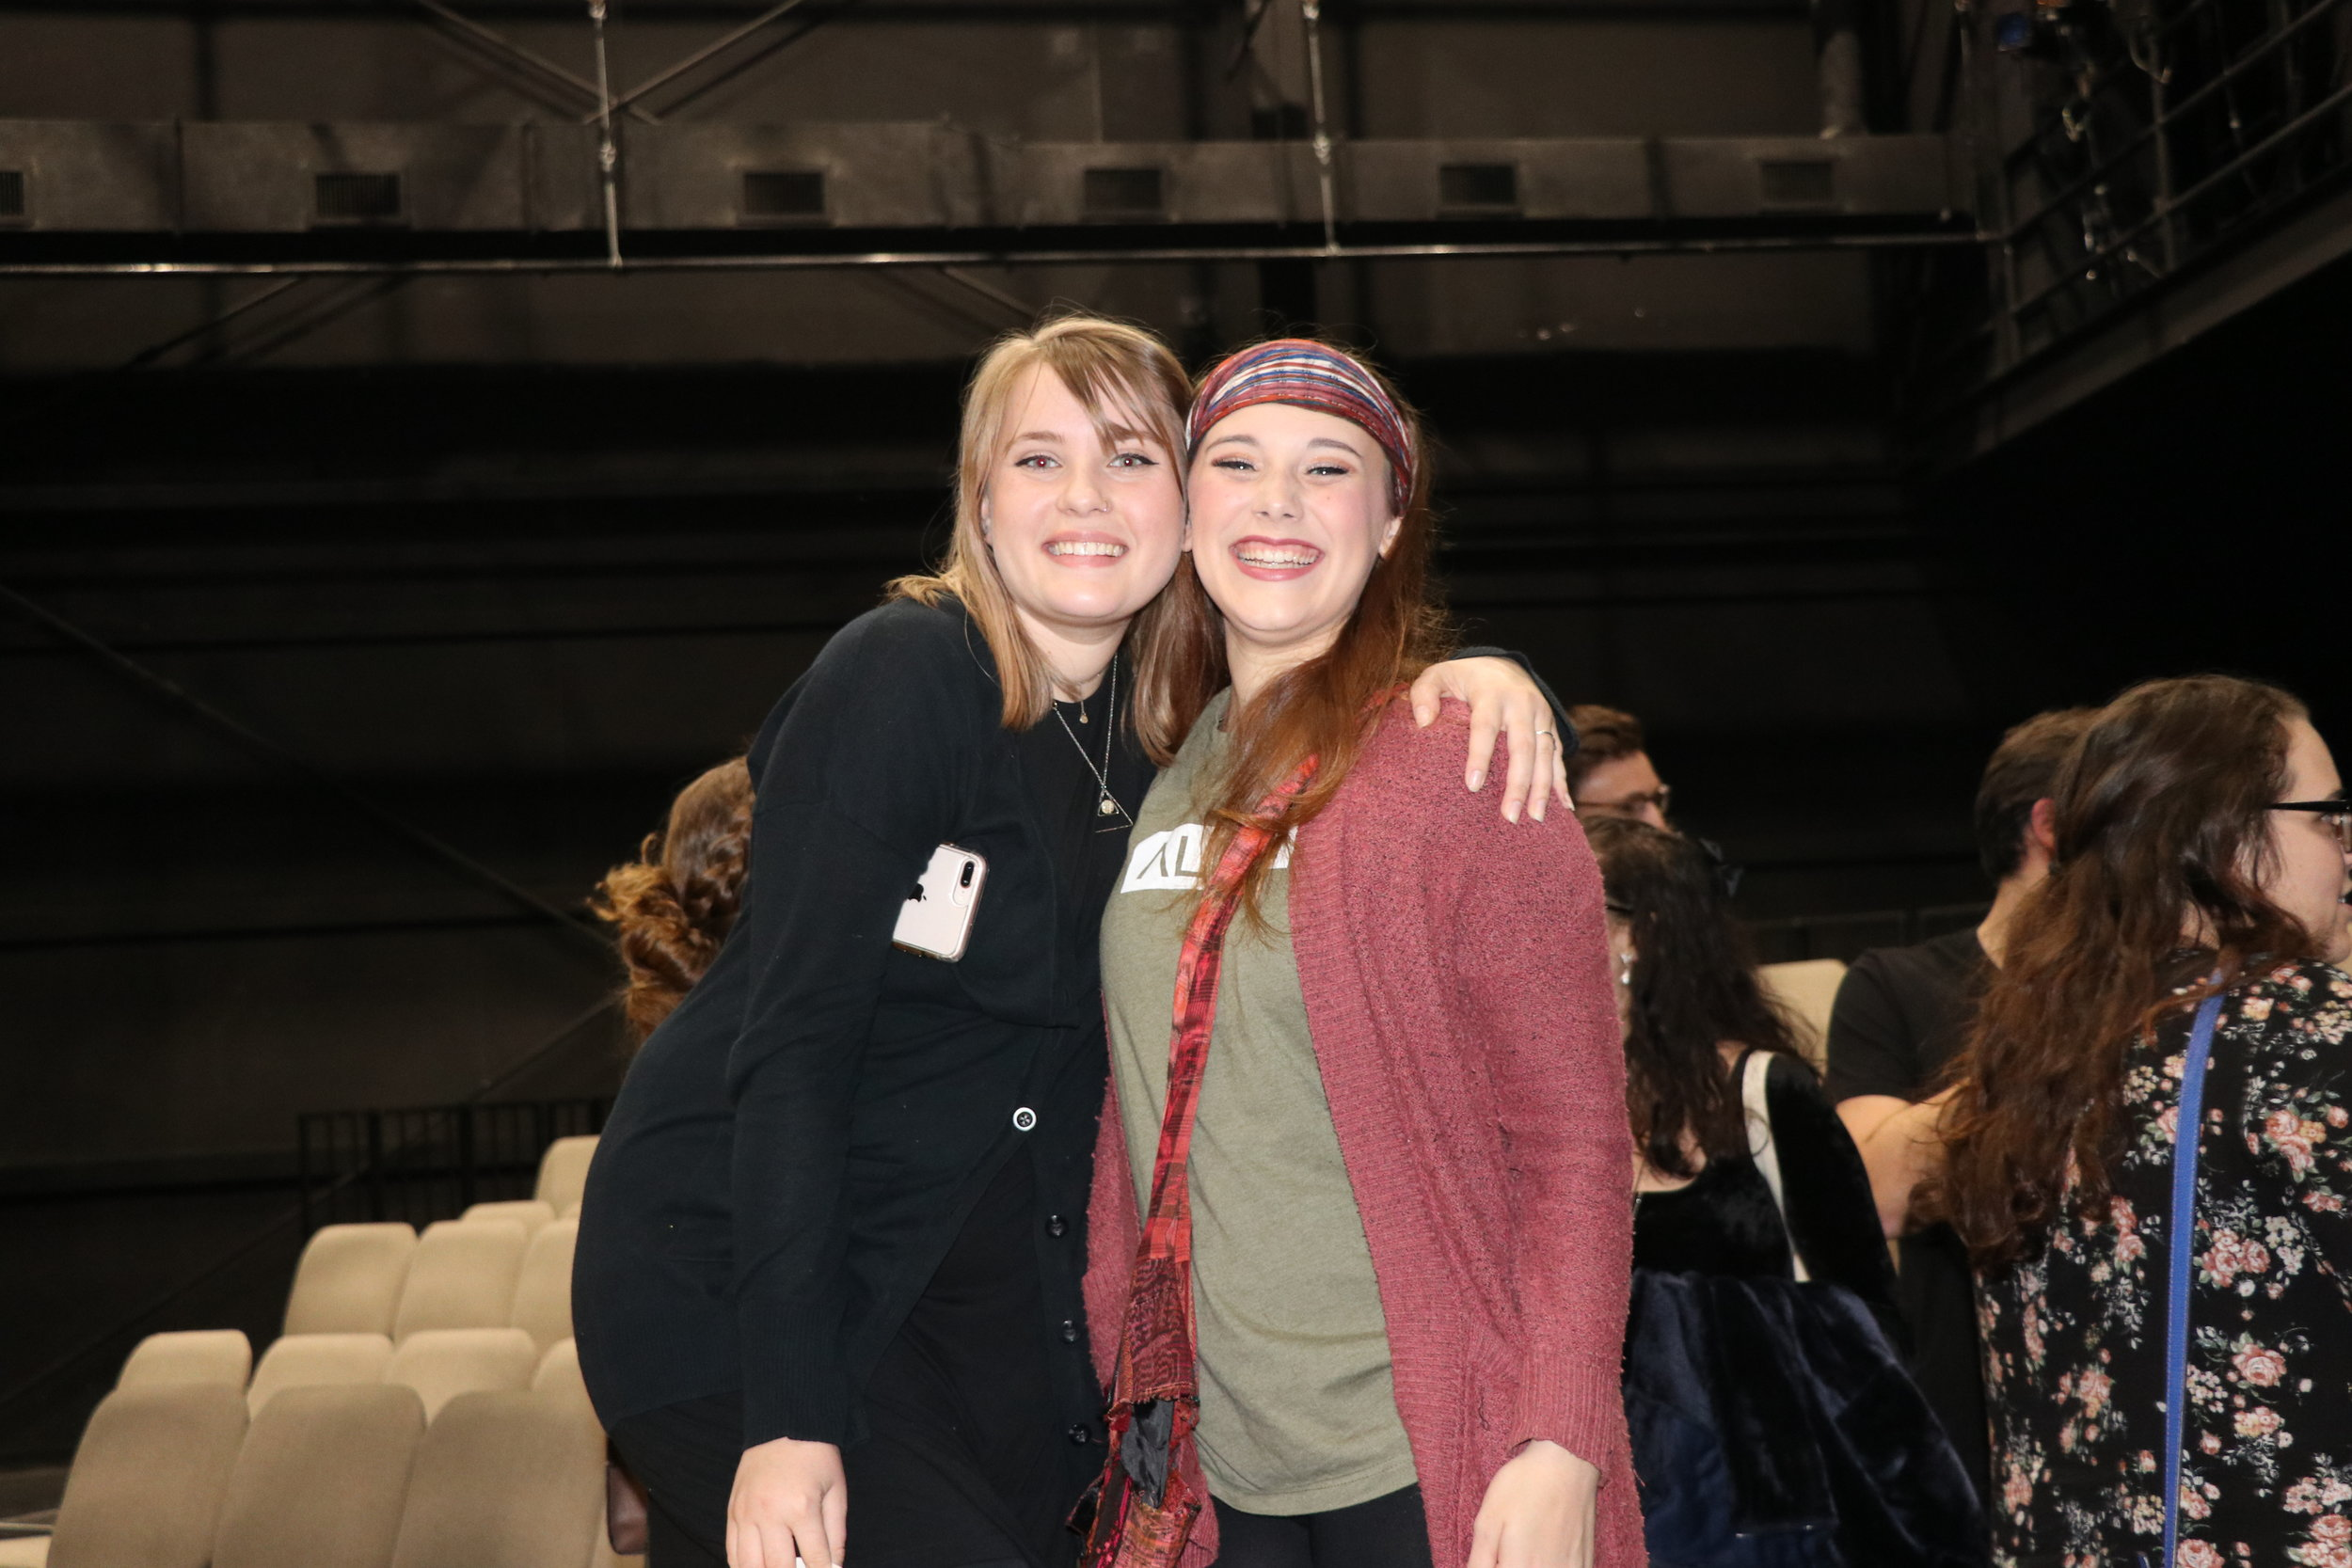 Marlee Daniel, assistant stage manager (sophomore) and Rachel Gasdia (sophomore) hug it out after killing it on opening night.